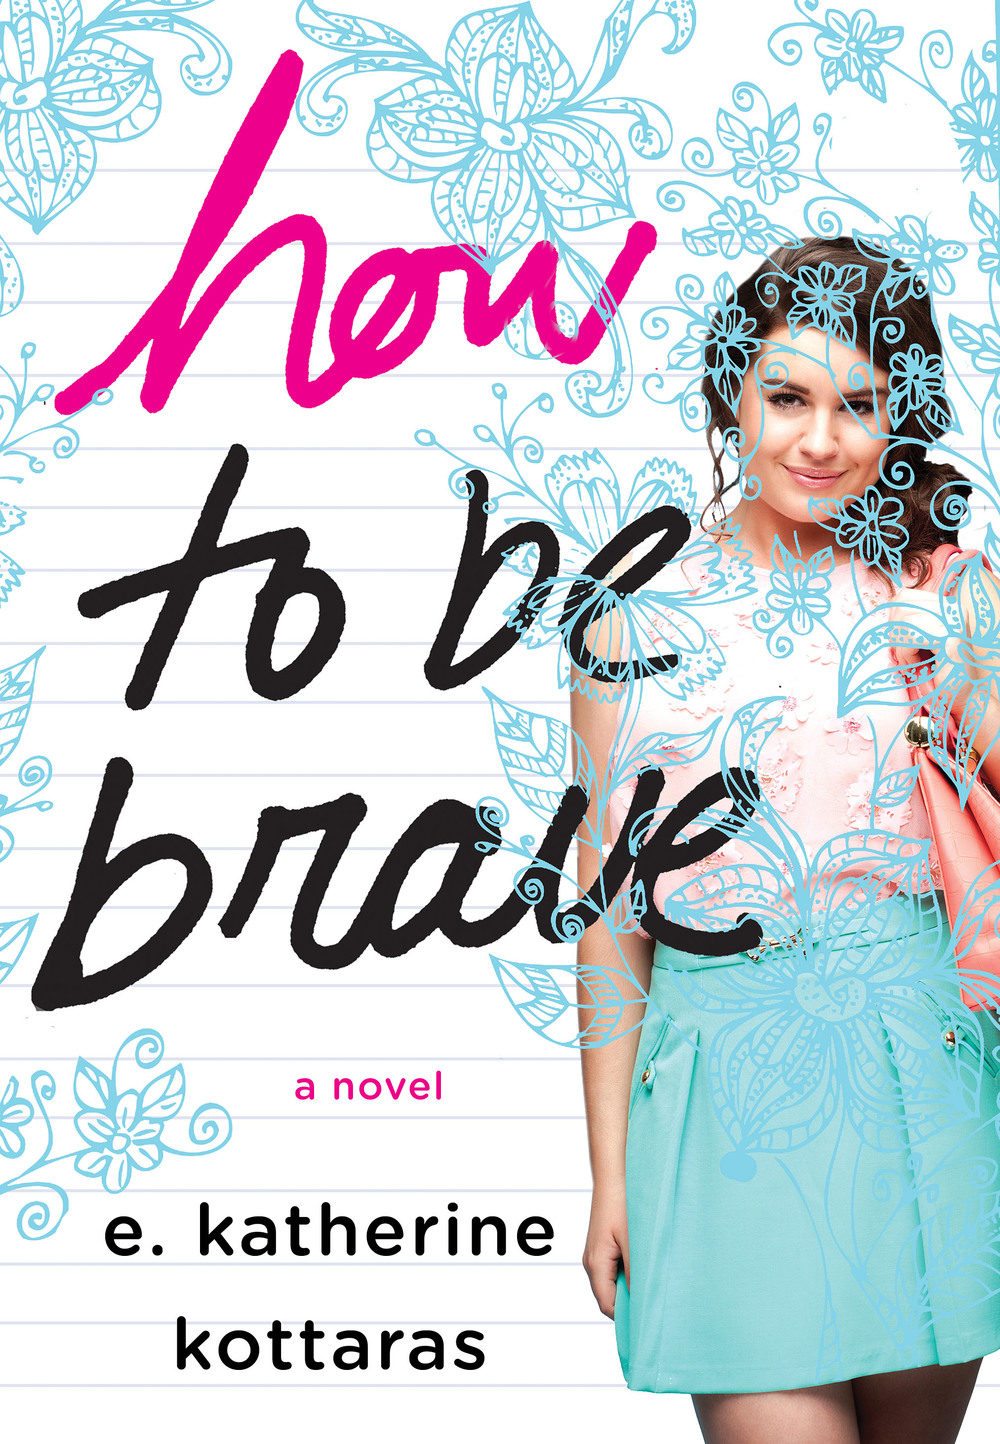 HOW TO BE BRAVE a Young Adult contemporary novel by E. Katherine Kottaras.